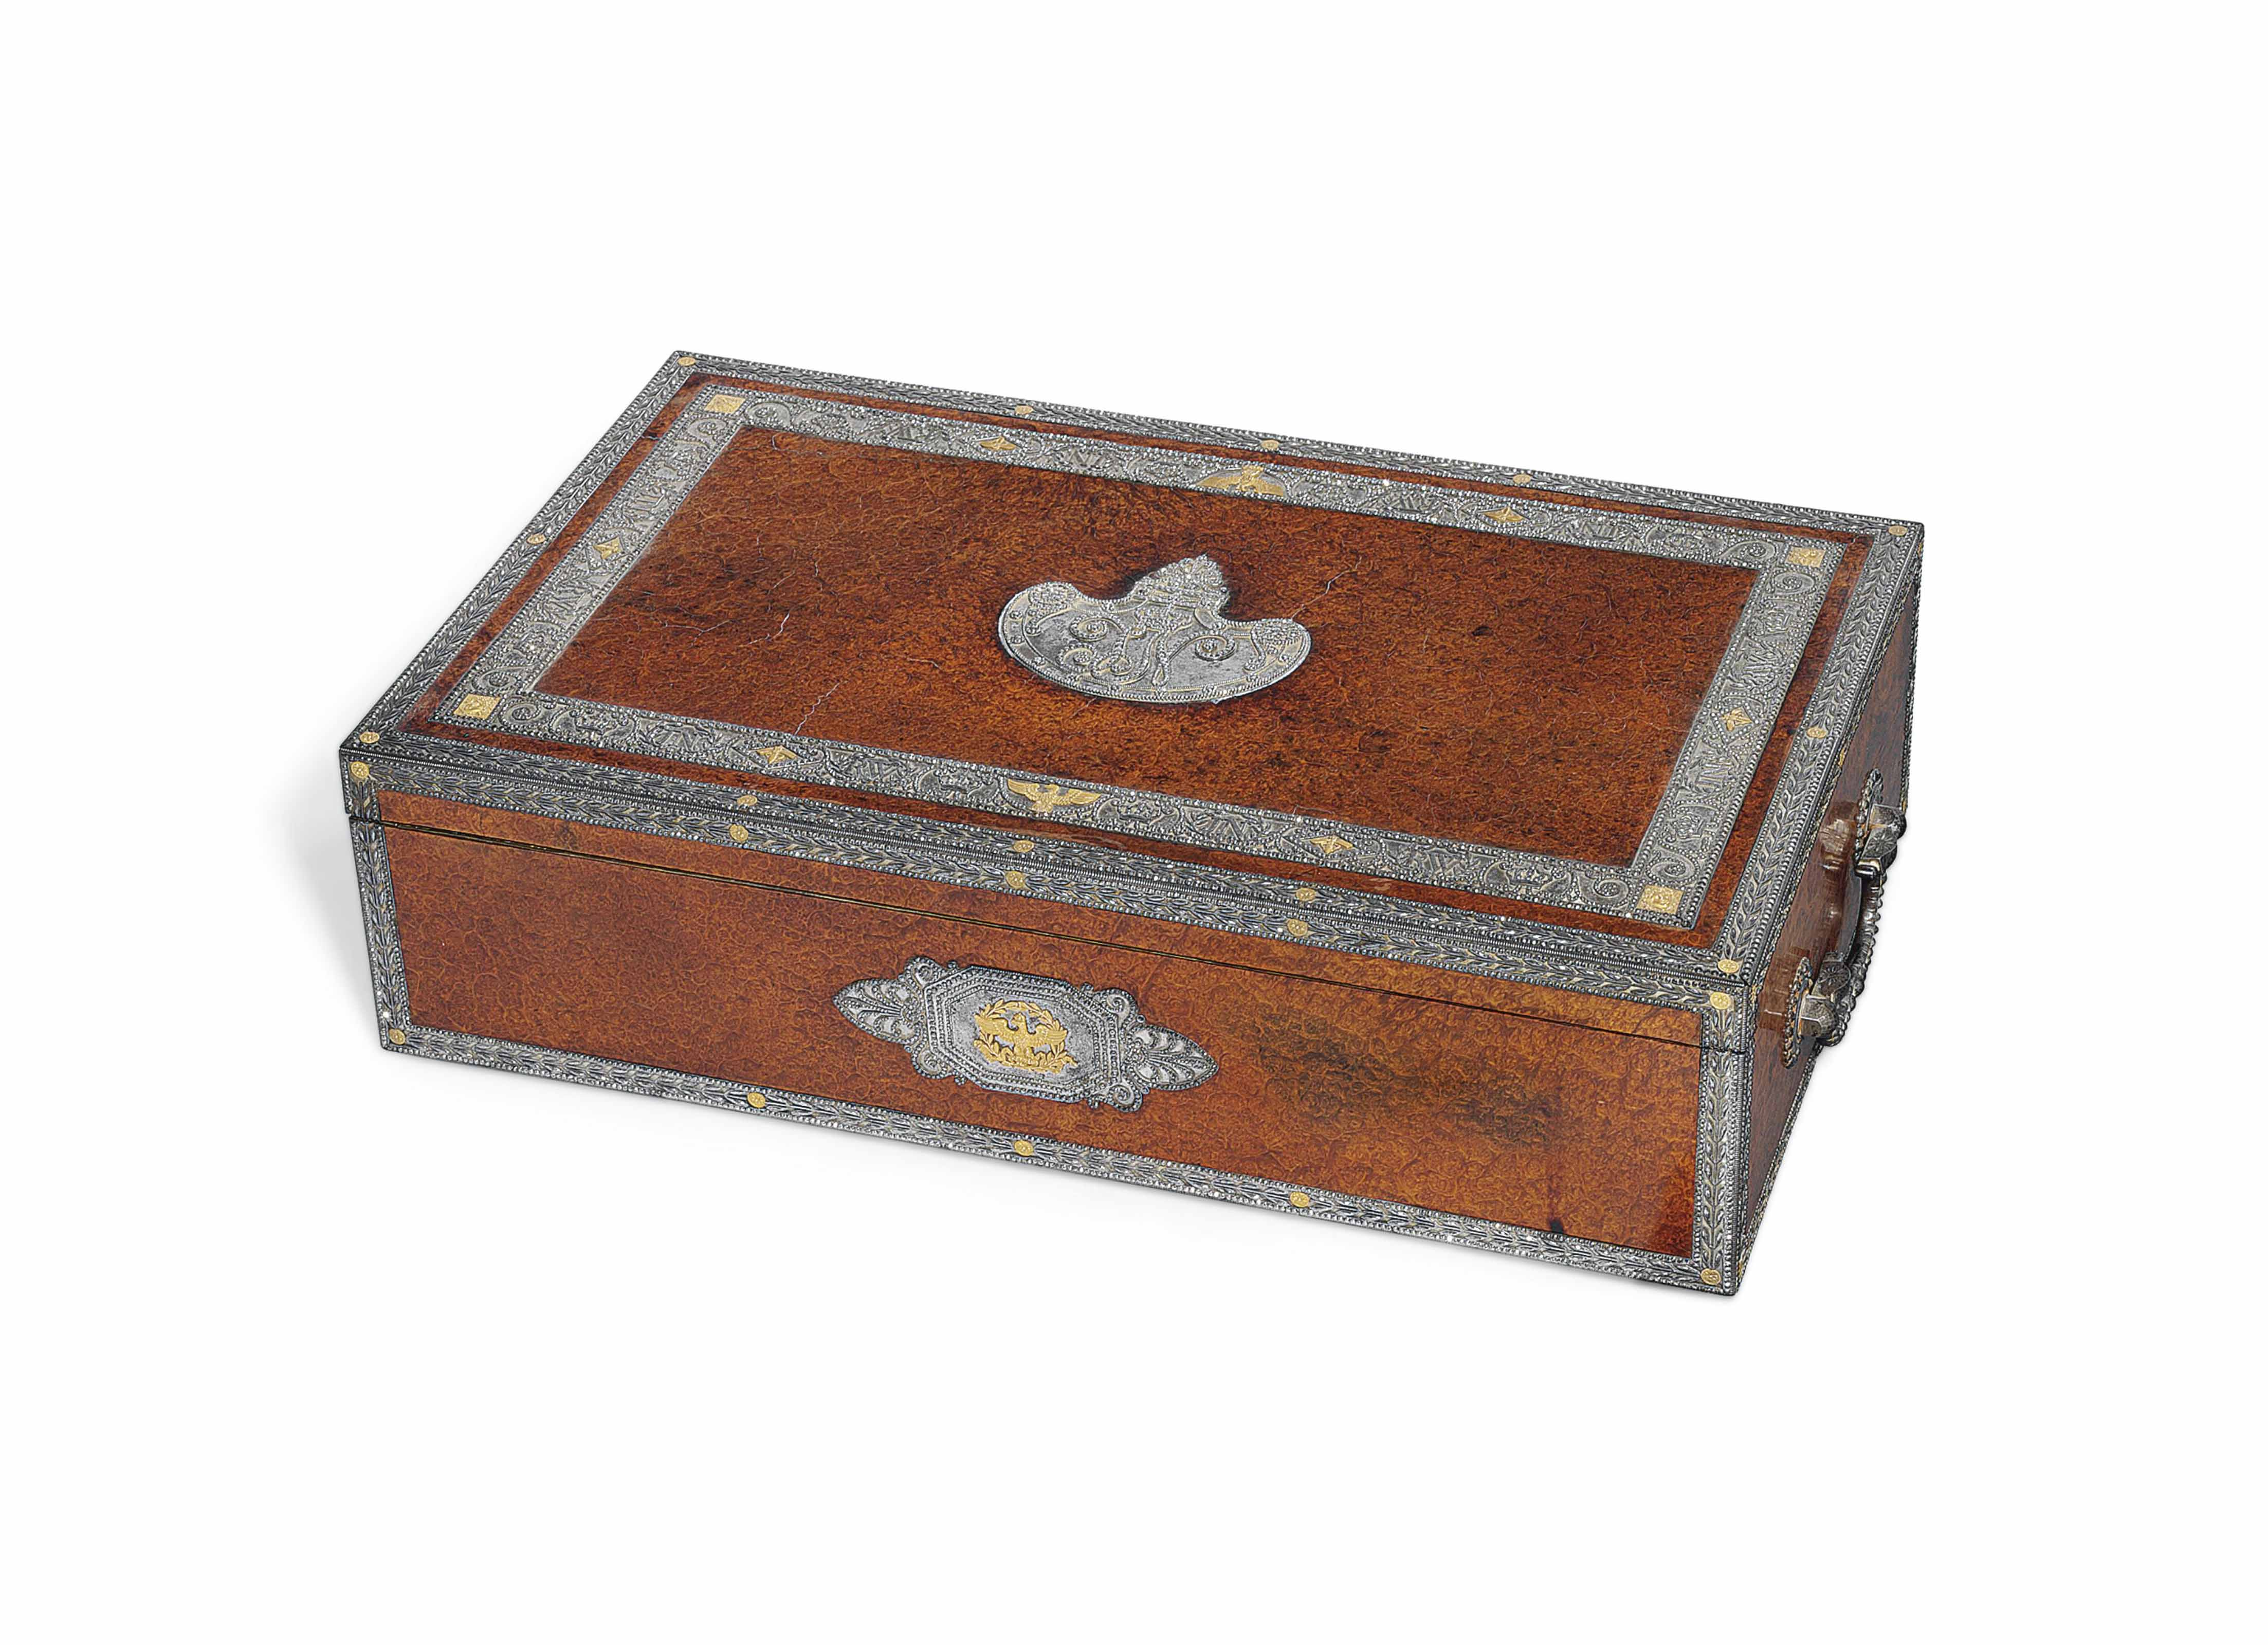 A FRENCH EMPIRE GOLD-MOUNTED, SILVER-GILT, GILT-BRONZE, MOTHER-OF-PEARL, POLISHED STEEL AND EBONY WRITING NECESSAIRE